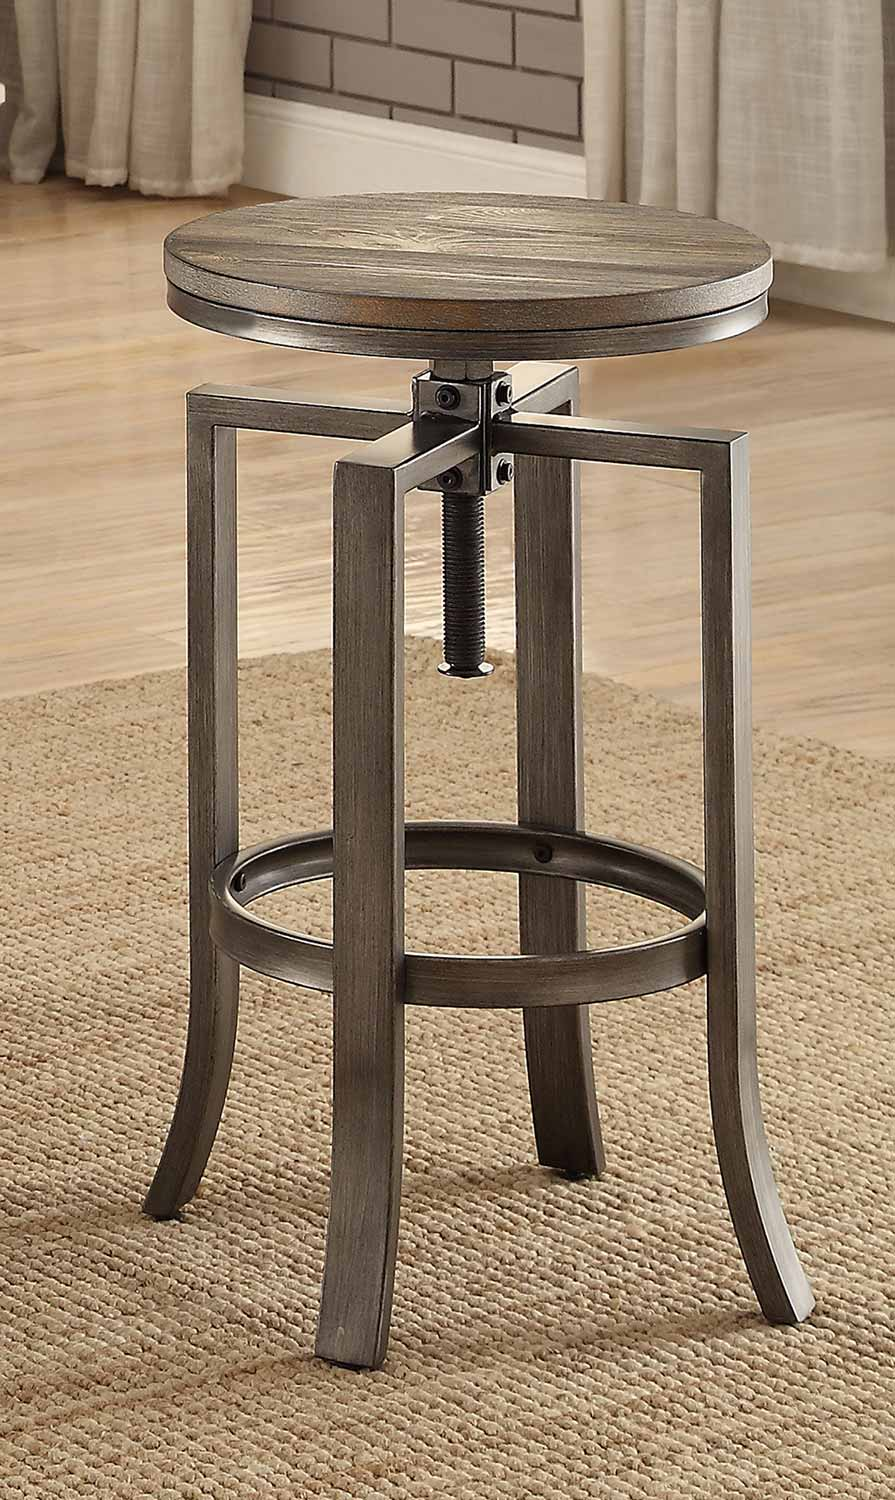 Coaster 122101 Adjustable Bar Stool Wire Brushed Nutmeg